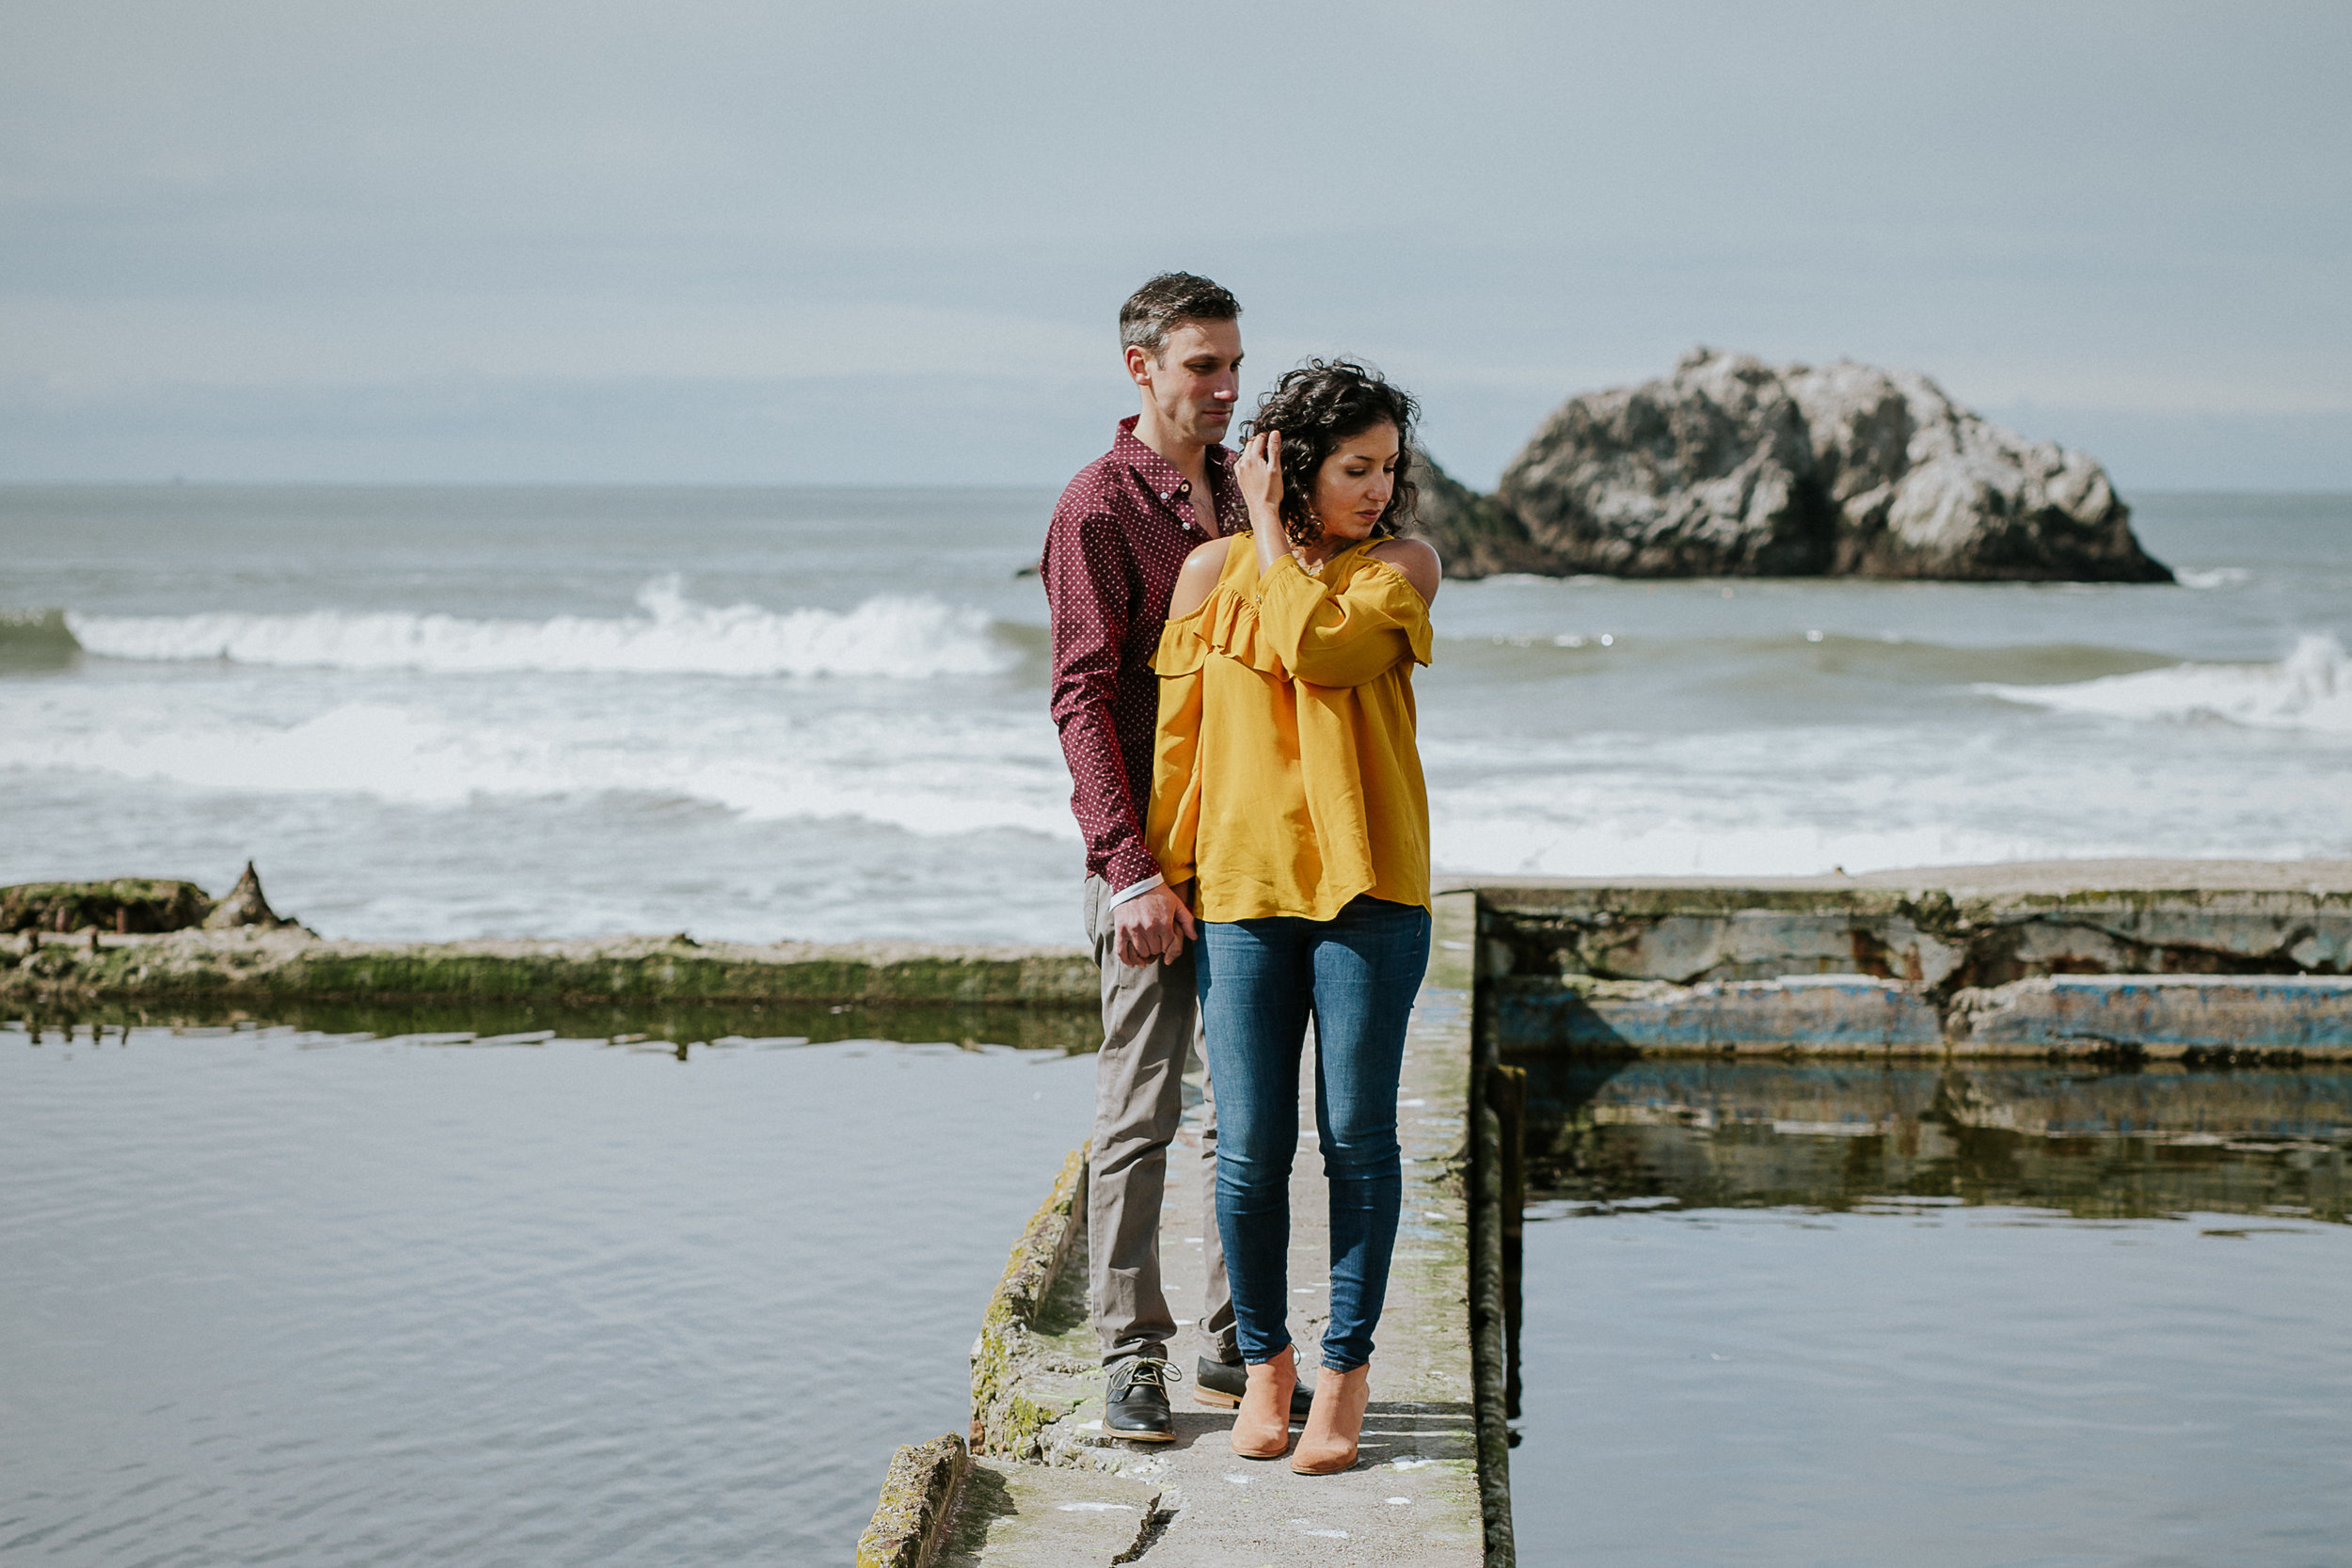 Ada and dave - san-francisco-engagement-golden-gate-park-sutro-baths-103.jpg